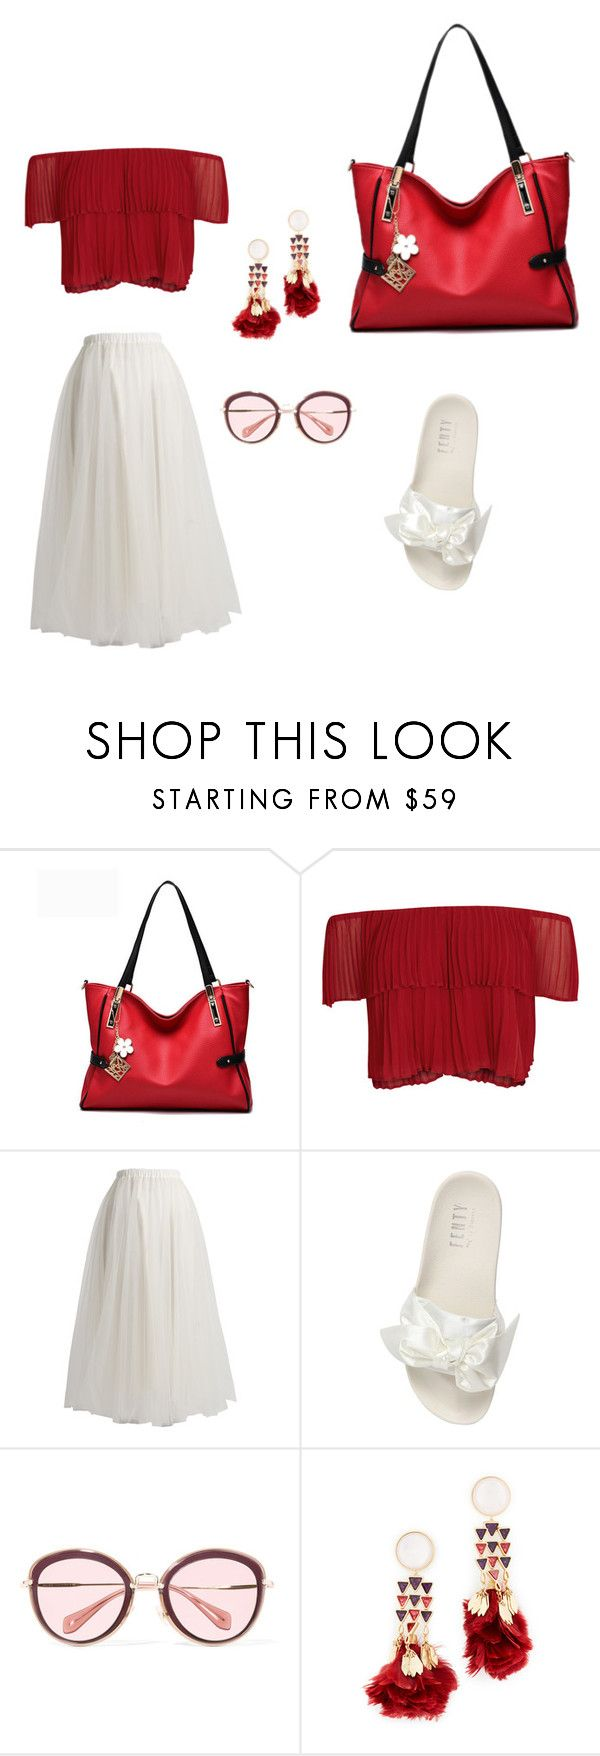 Walking Thru The Boardwalk Outfit By Mrsagosto Liked On Polyvore Featuring Keepsake